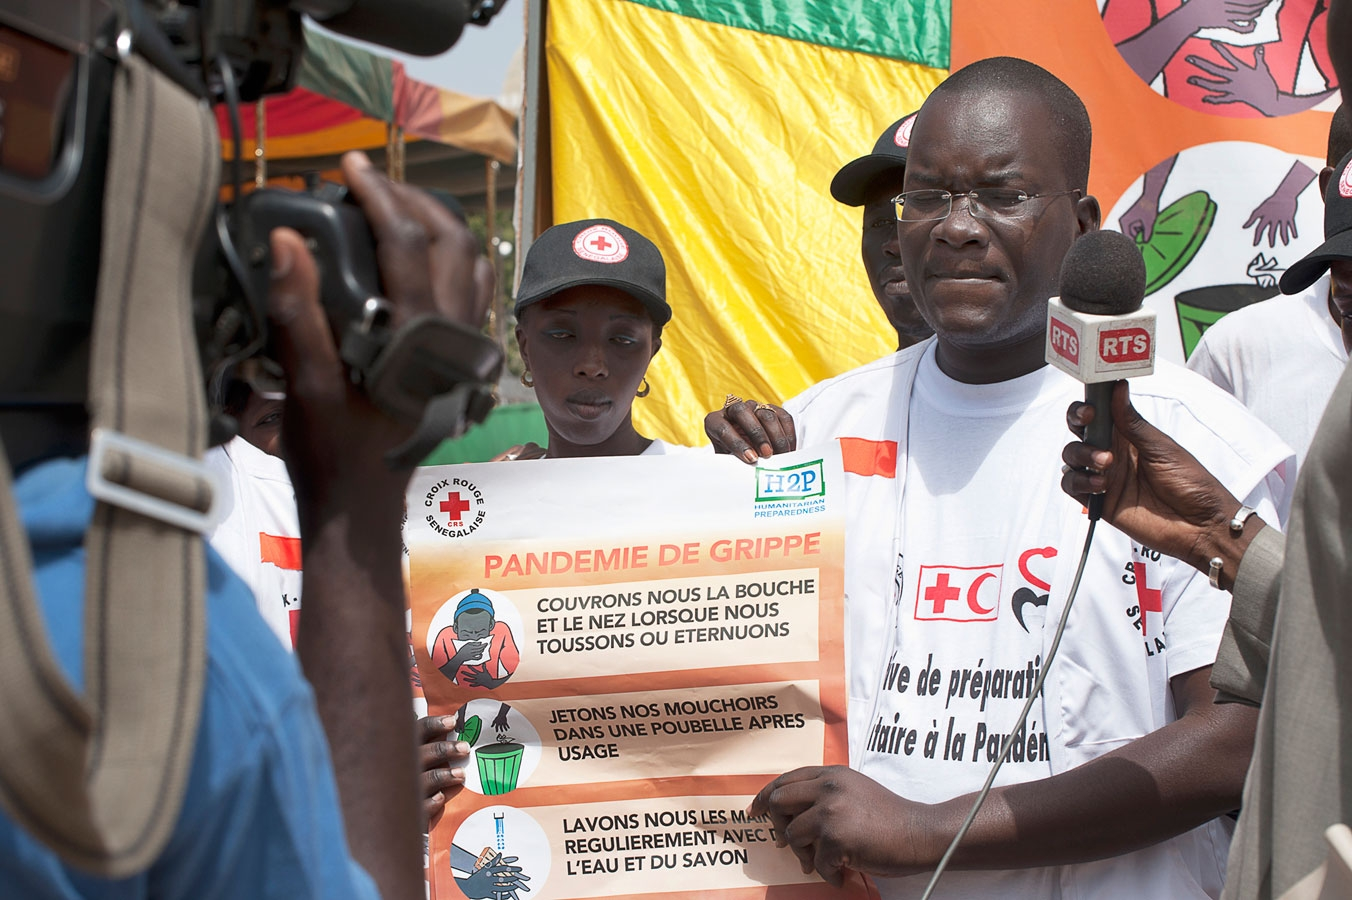 <p>Dr Abdoulaya Wone of the Senegal Red Cross speaks to the media about the IFRC's Human Pandemic Preparedness program in Tivouane, Senegal</p>